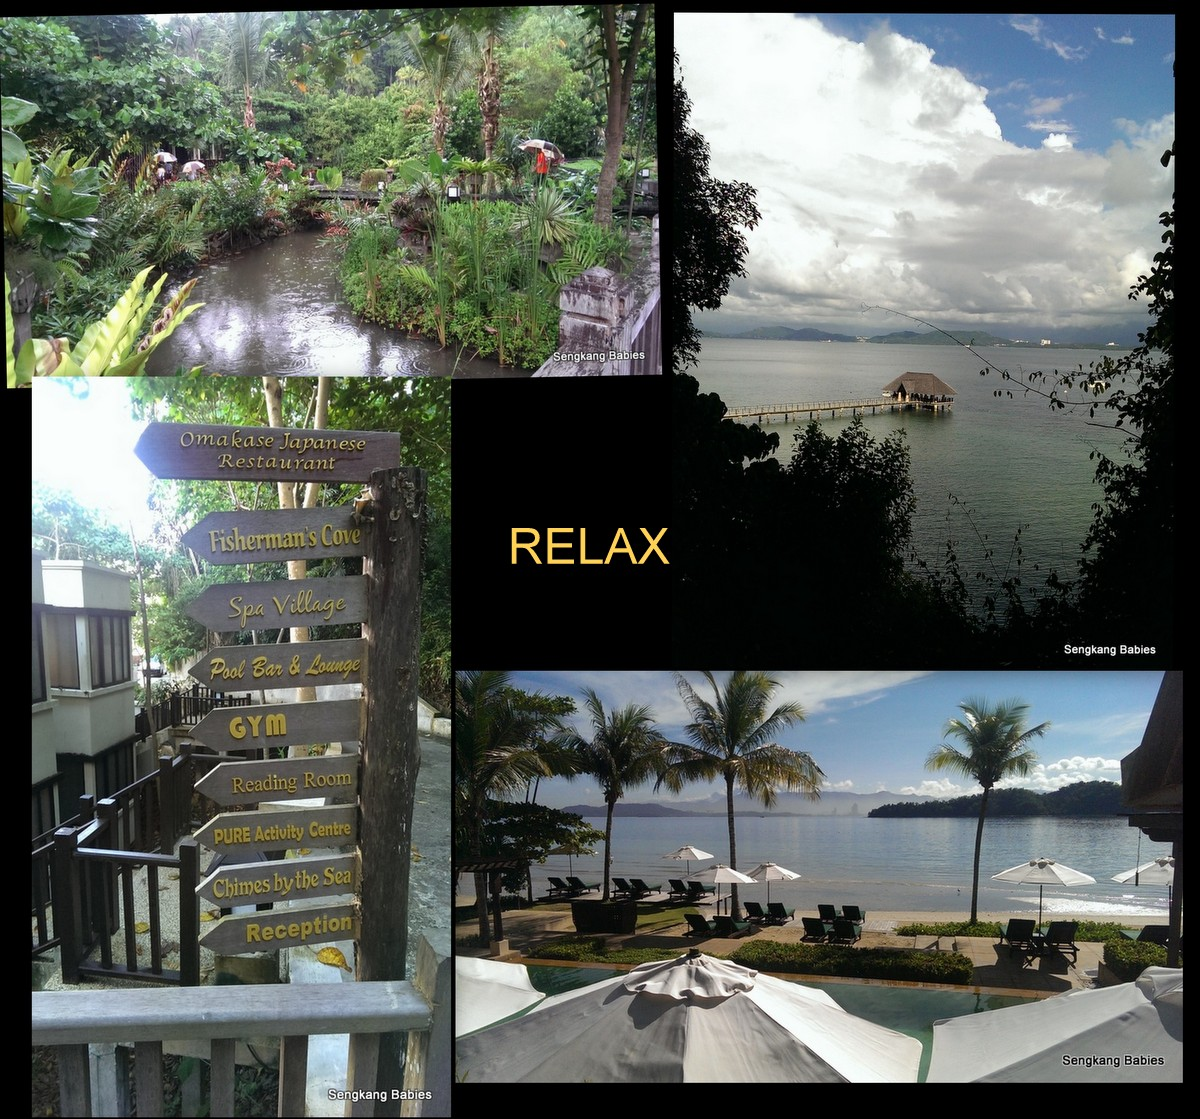 Day 6 Gaya Island Resort facilities11